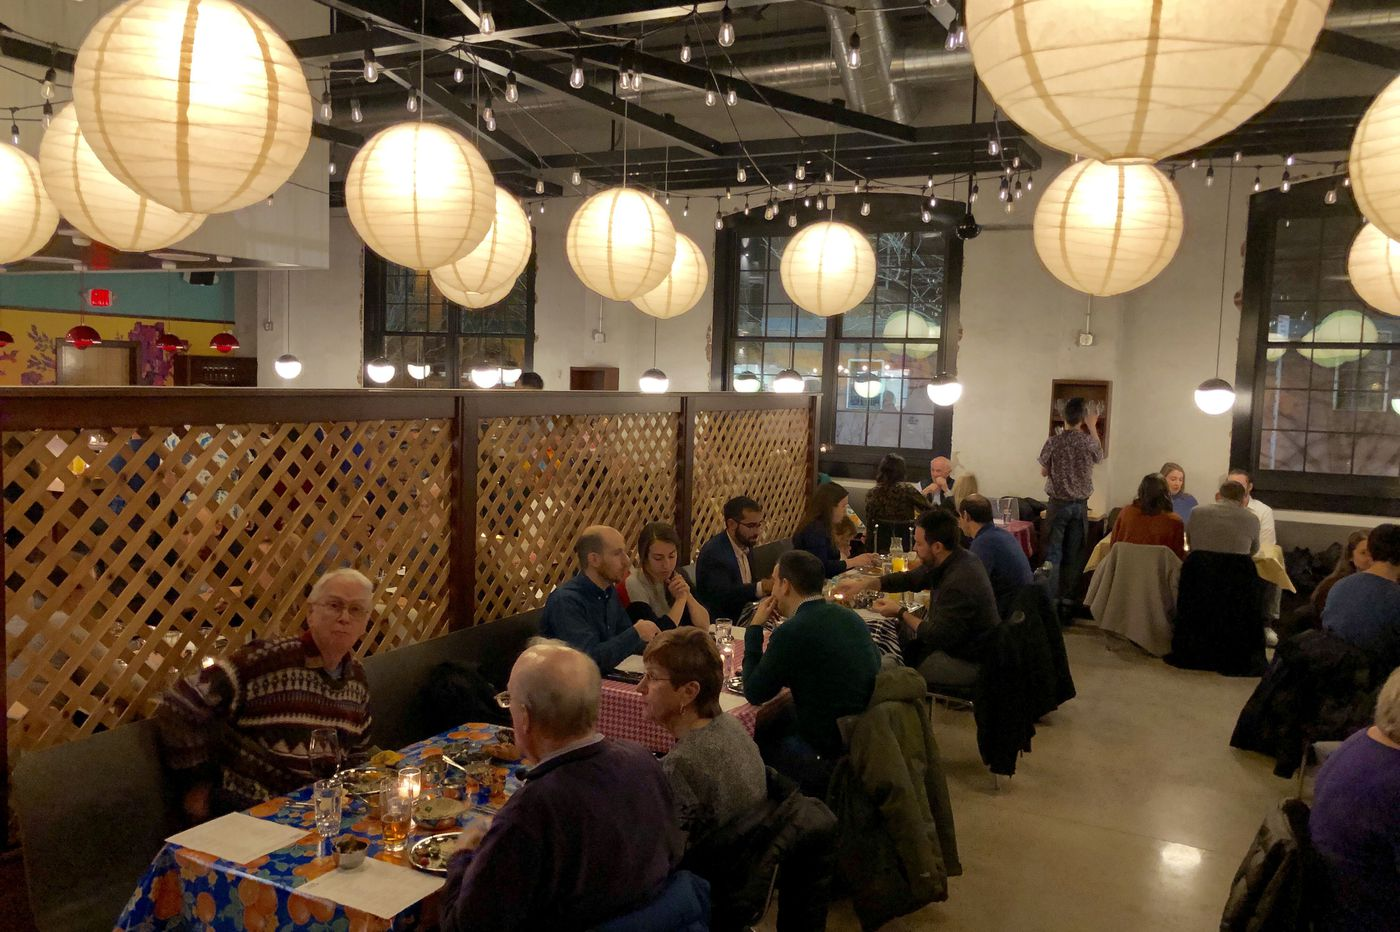 An early look at Laser Wolf, Mike Solomonov's Israeli skewer restaurant